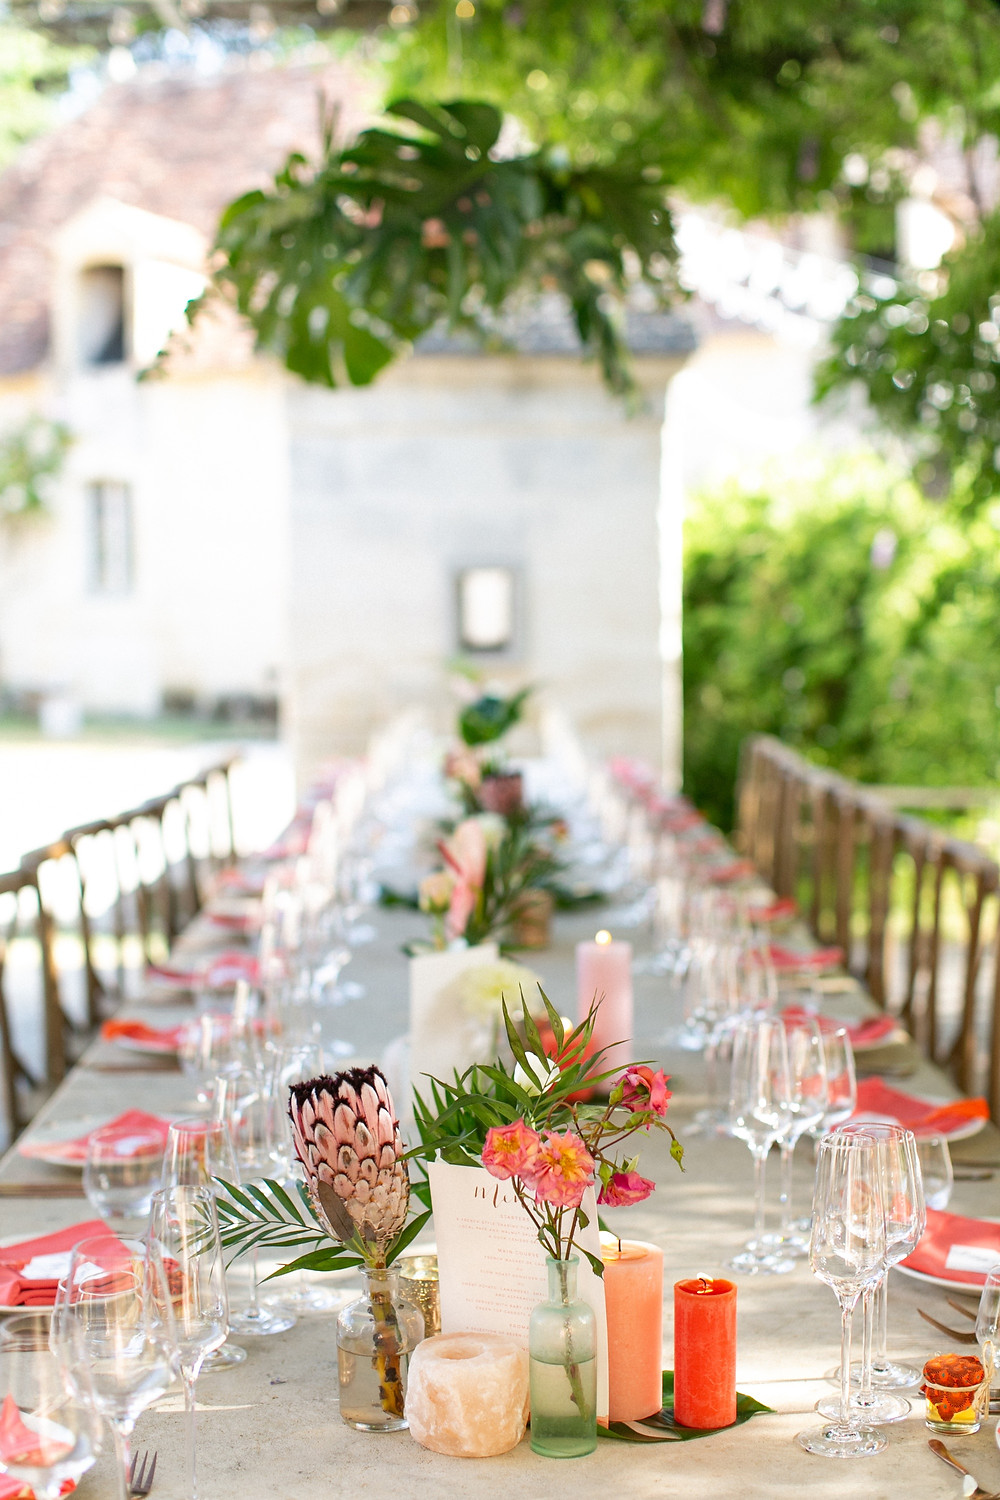 Destination Wedding Planner Dordogne, France